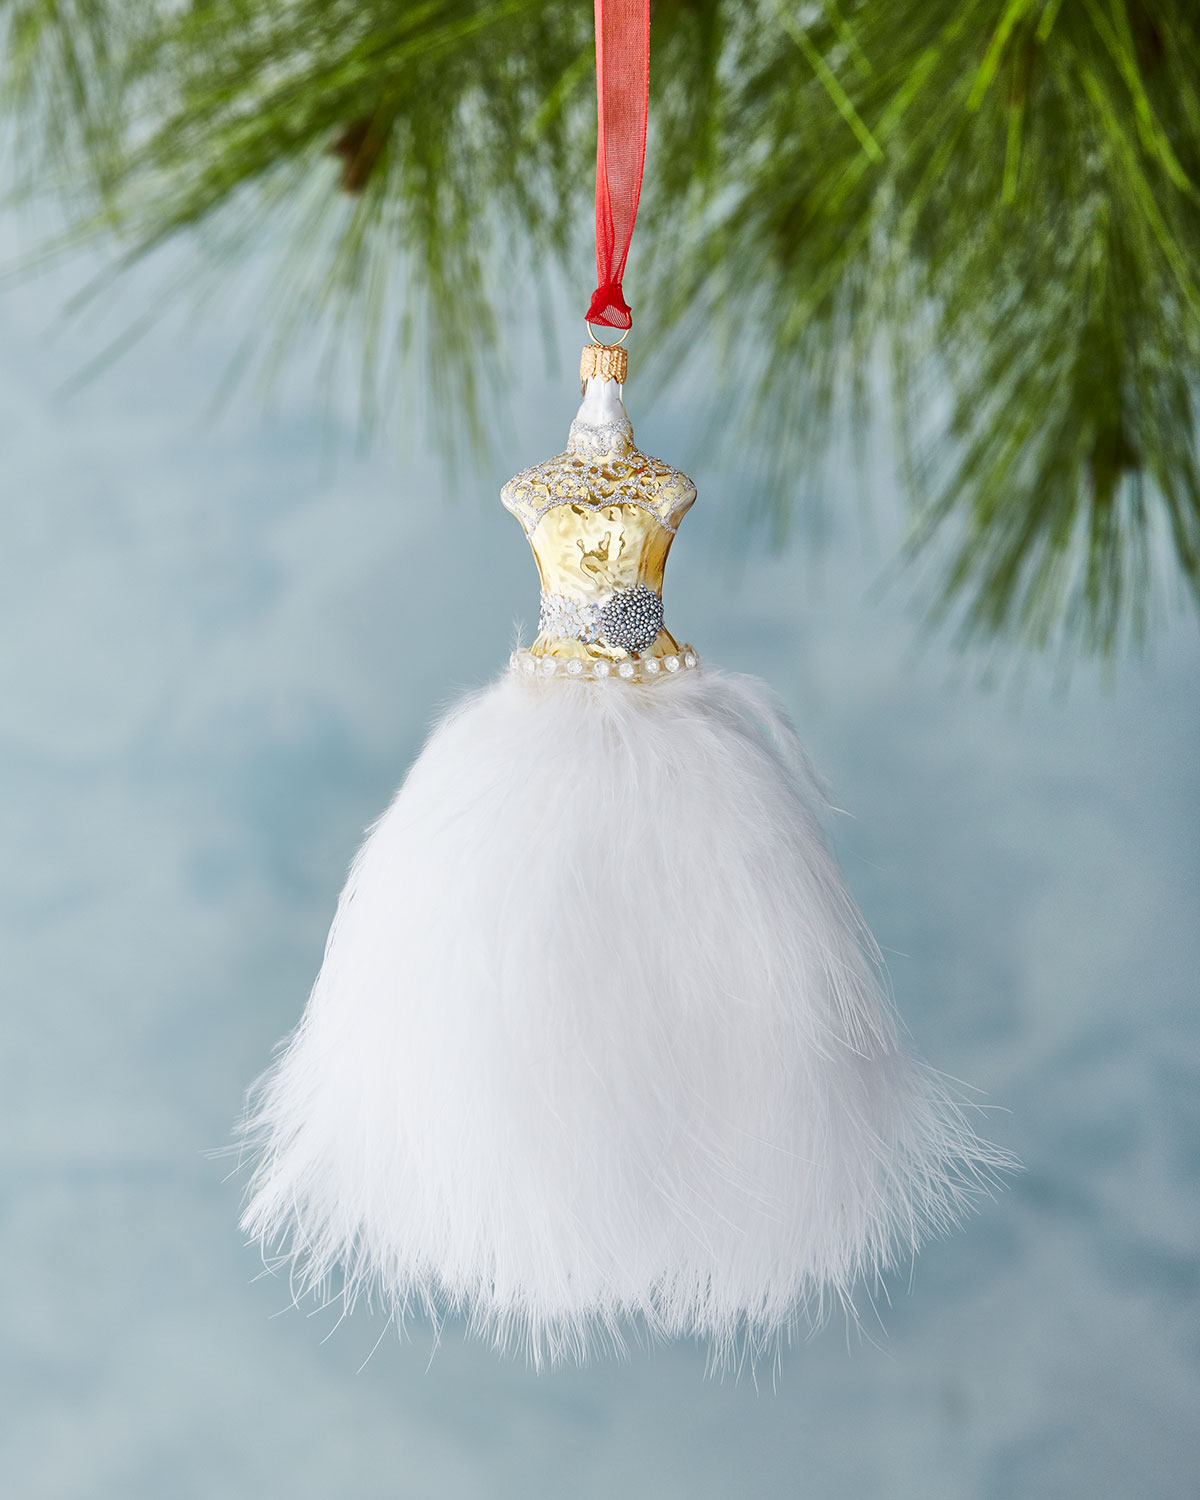 Dress Christmas Ornament with Feathers